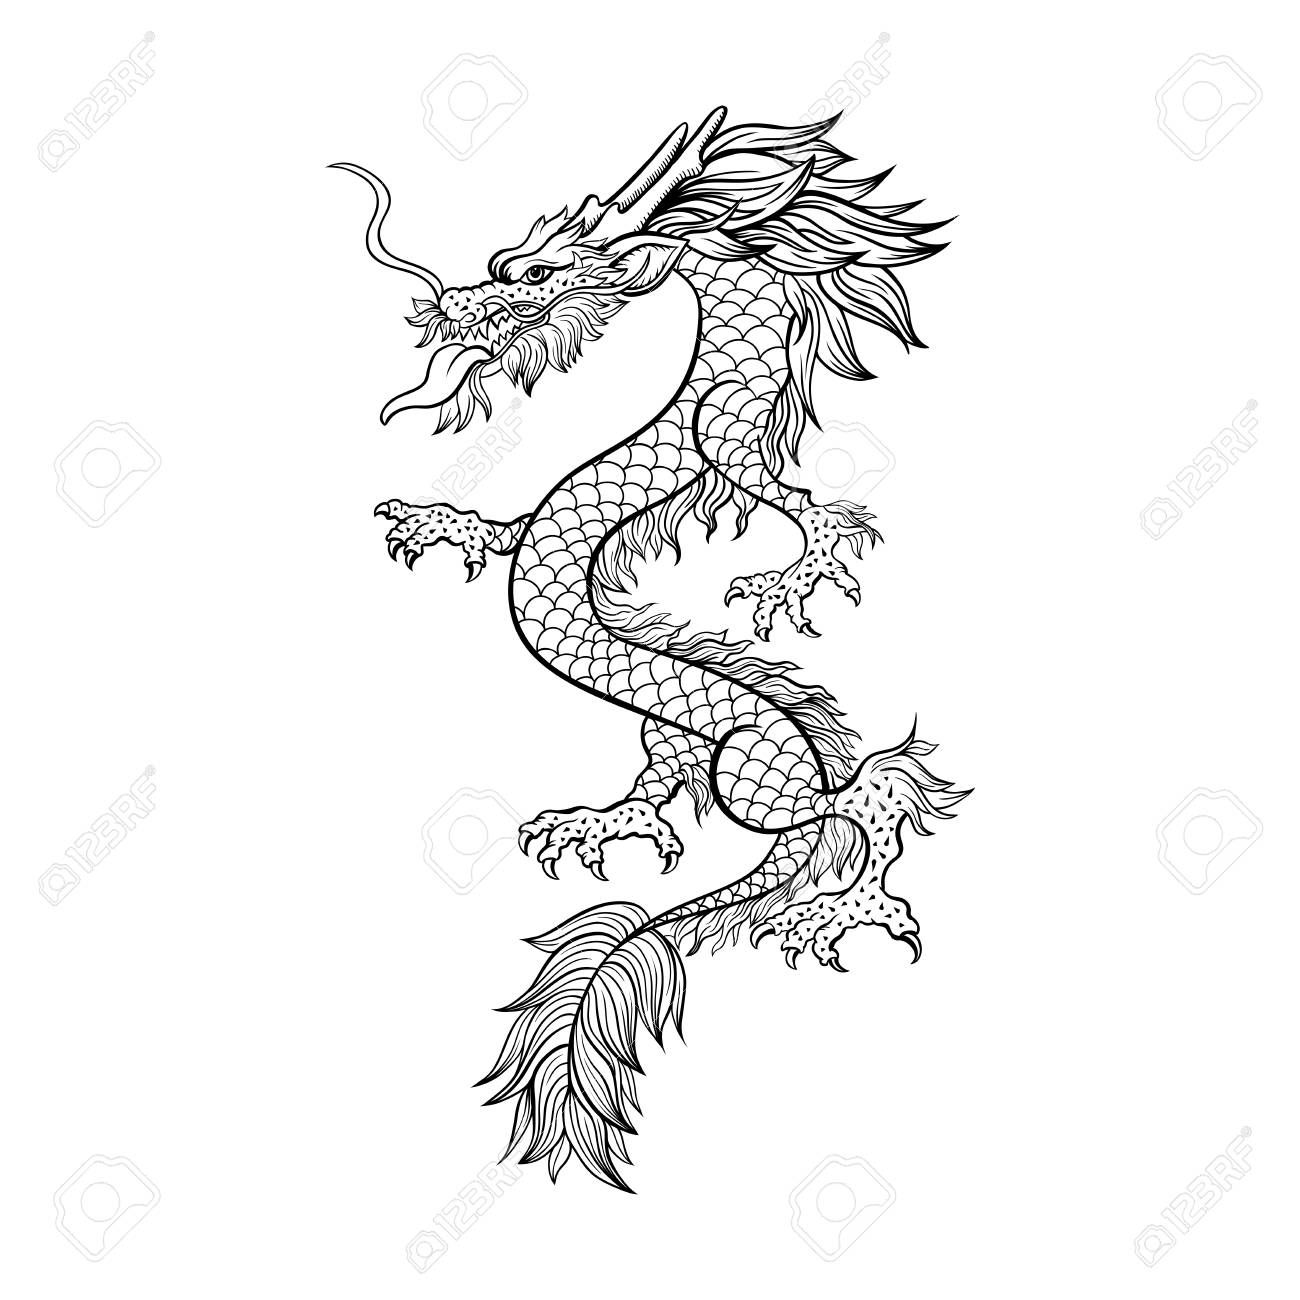 30+ Chinese dragon clipart black and white information